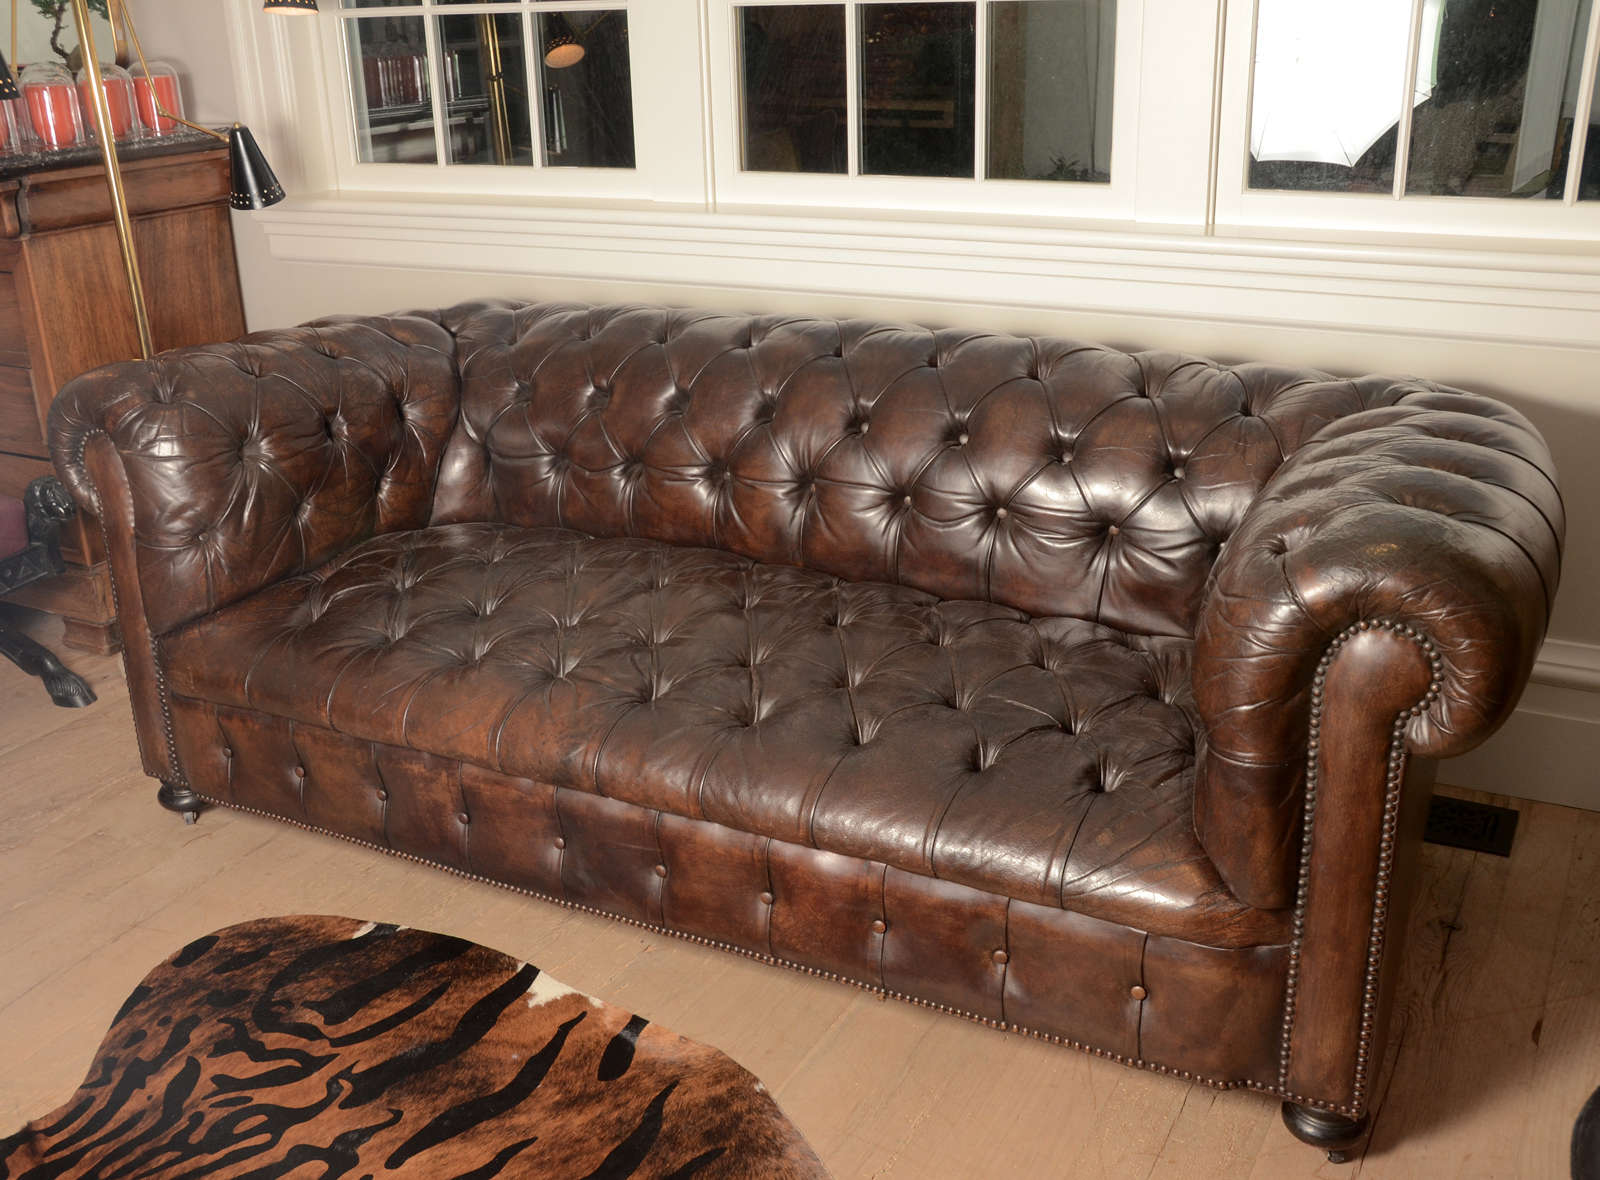 French Dark Brown Chesterfield Sofa With Original Leather Nailhead Detailing Along The Arm Rail And